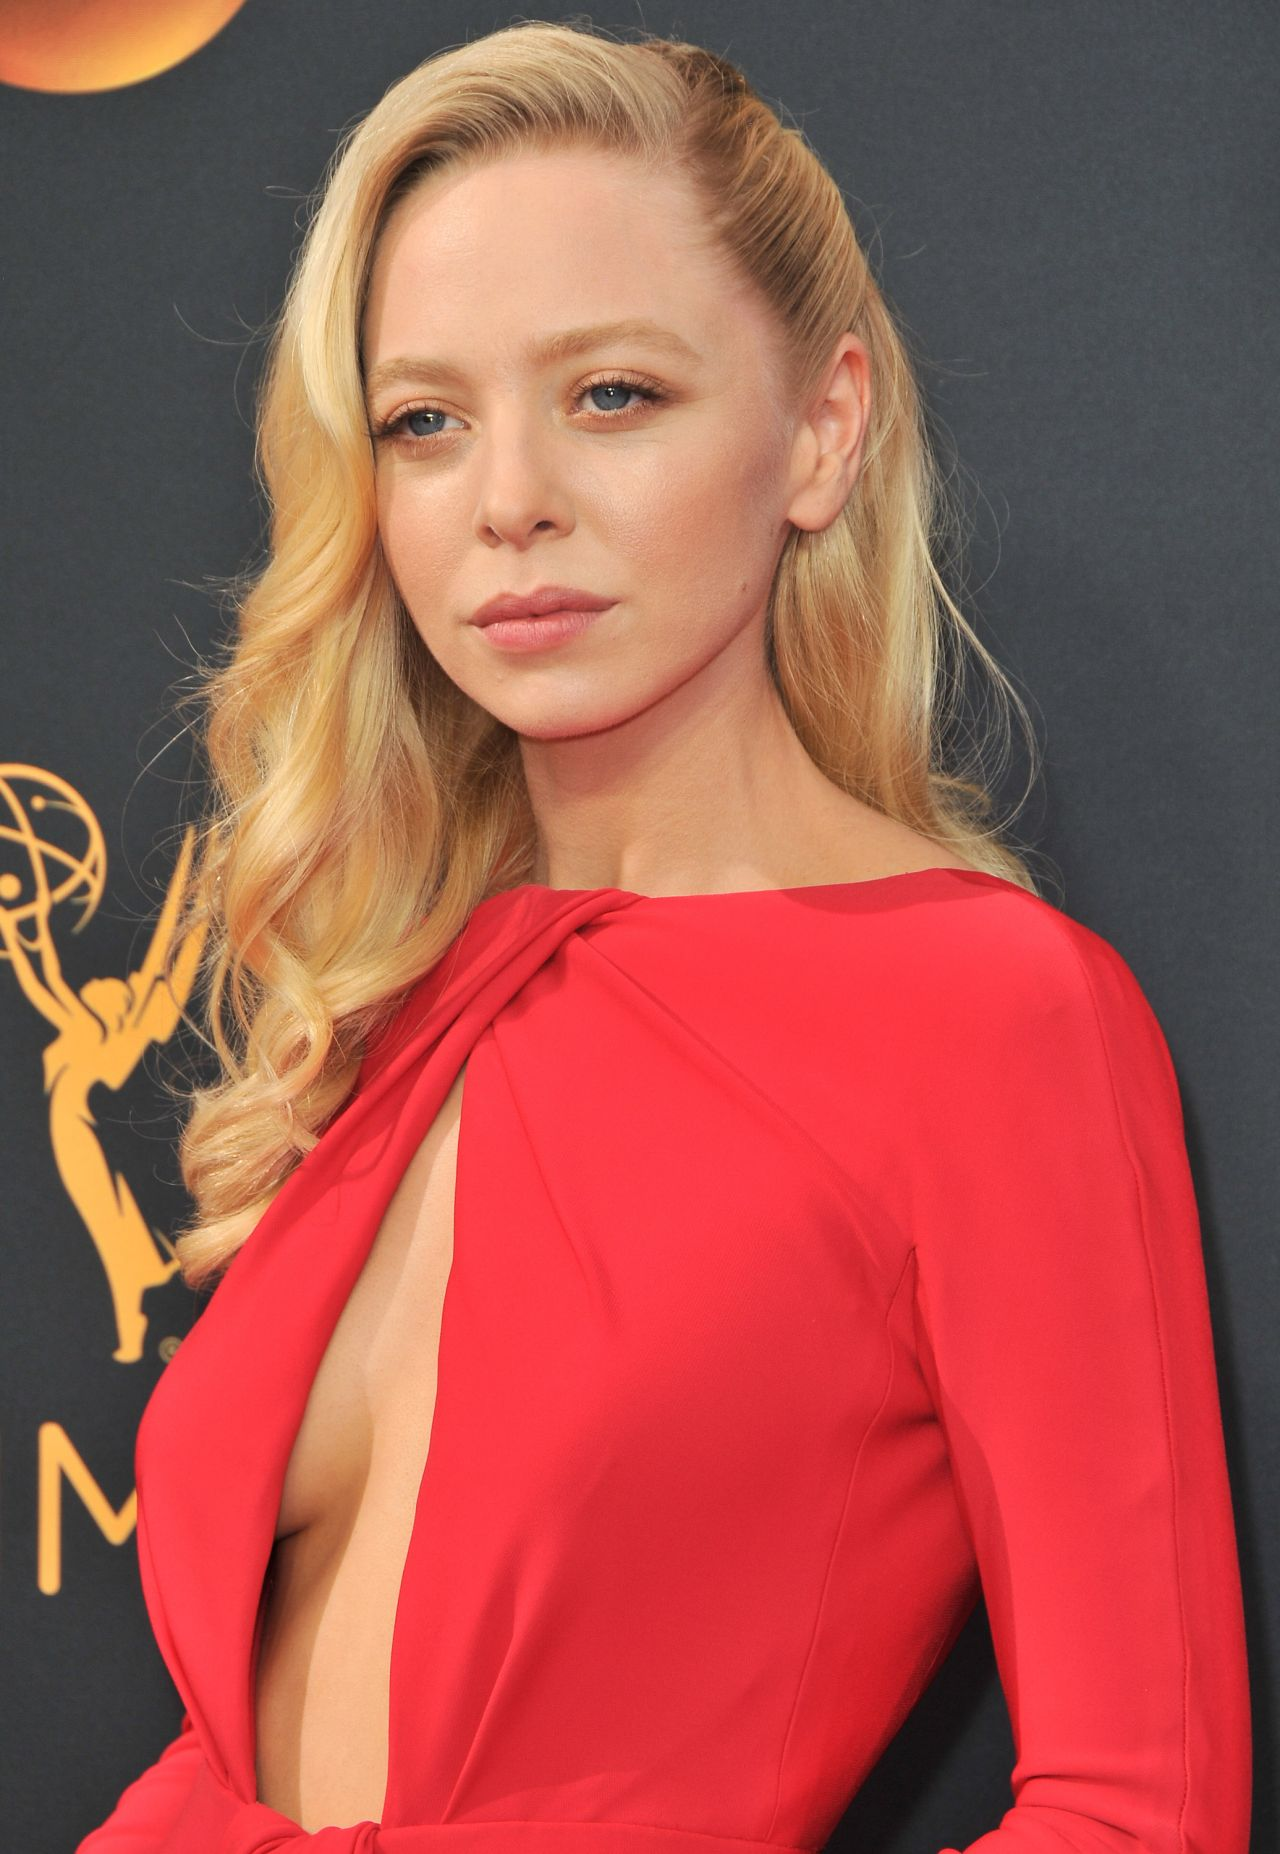 2019 Portia Doubleday naked (59 photos), Pussy, Is a cute, Twitter, braless 2015